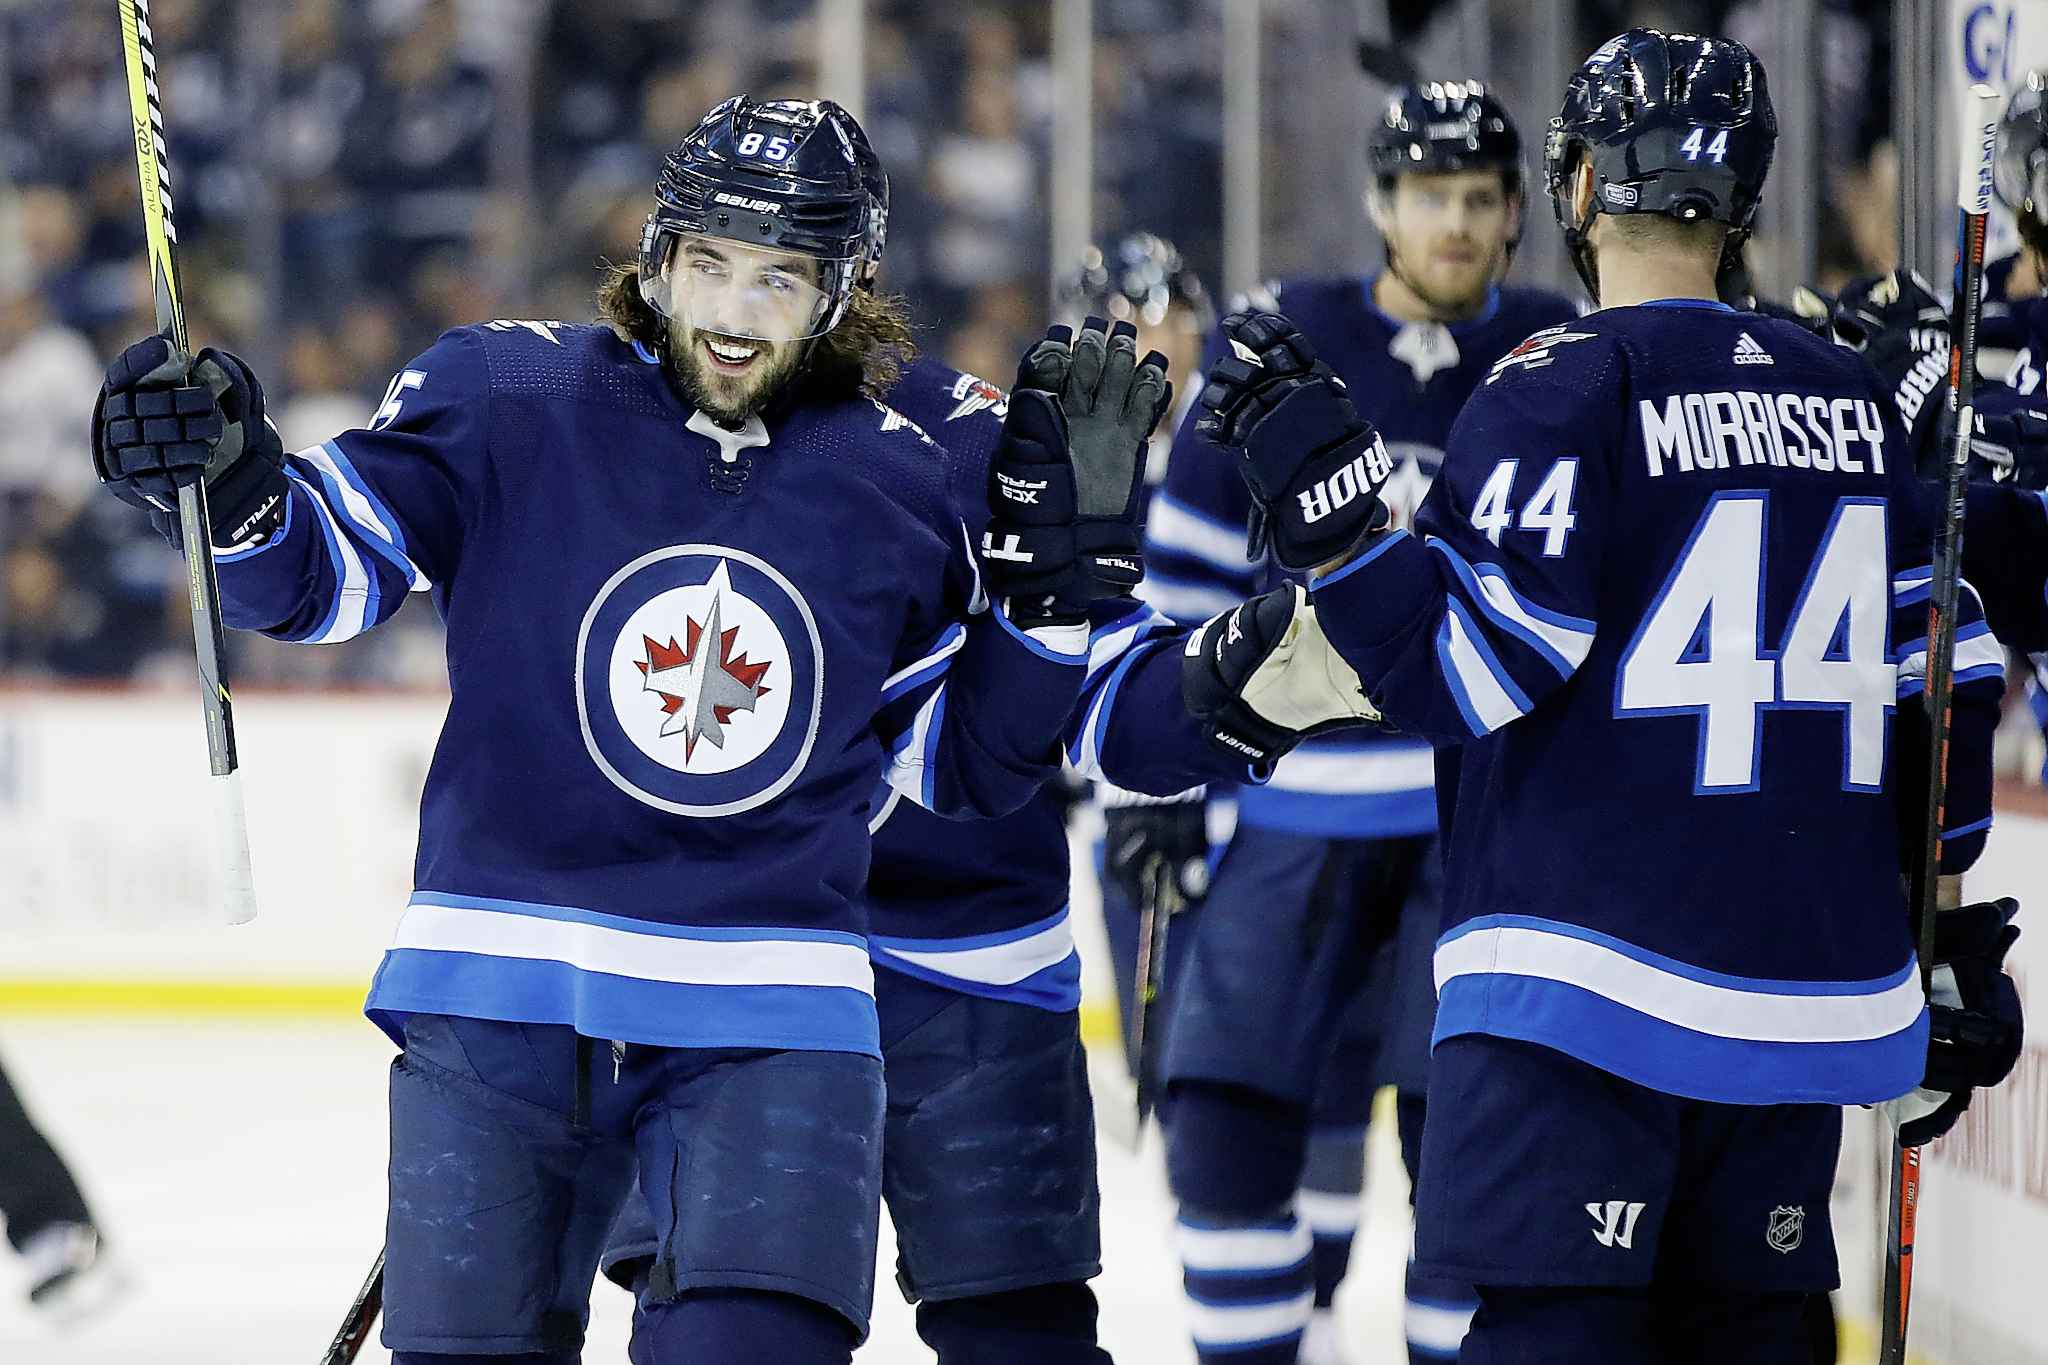 Winnipeg Jets' Mathieu Perreault celebrates his goal against the Colorado Avalanche during the first period in Winnipeg on Tuesday.